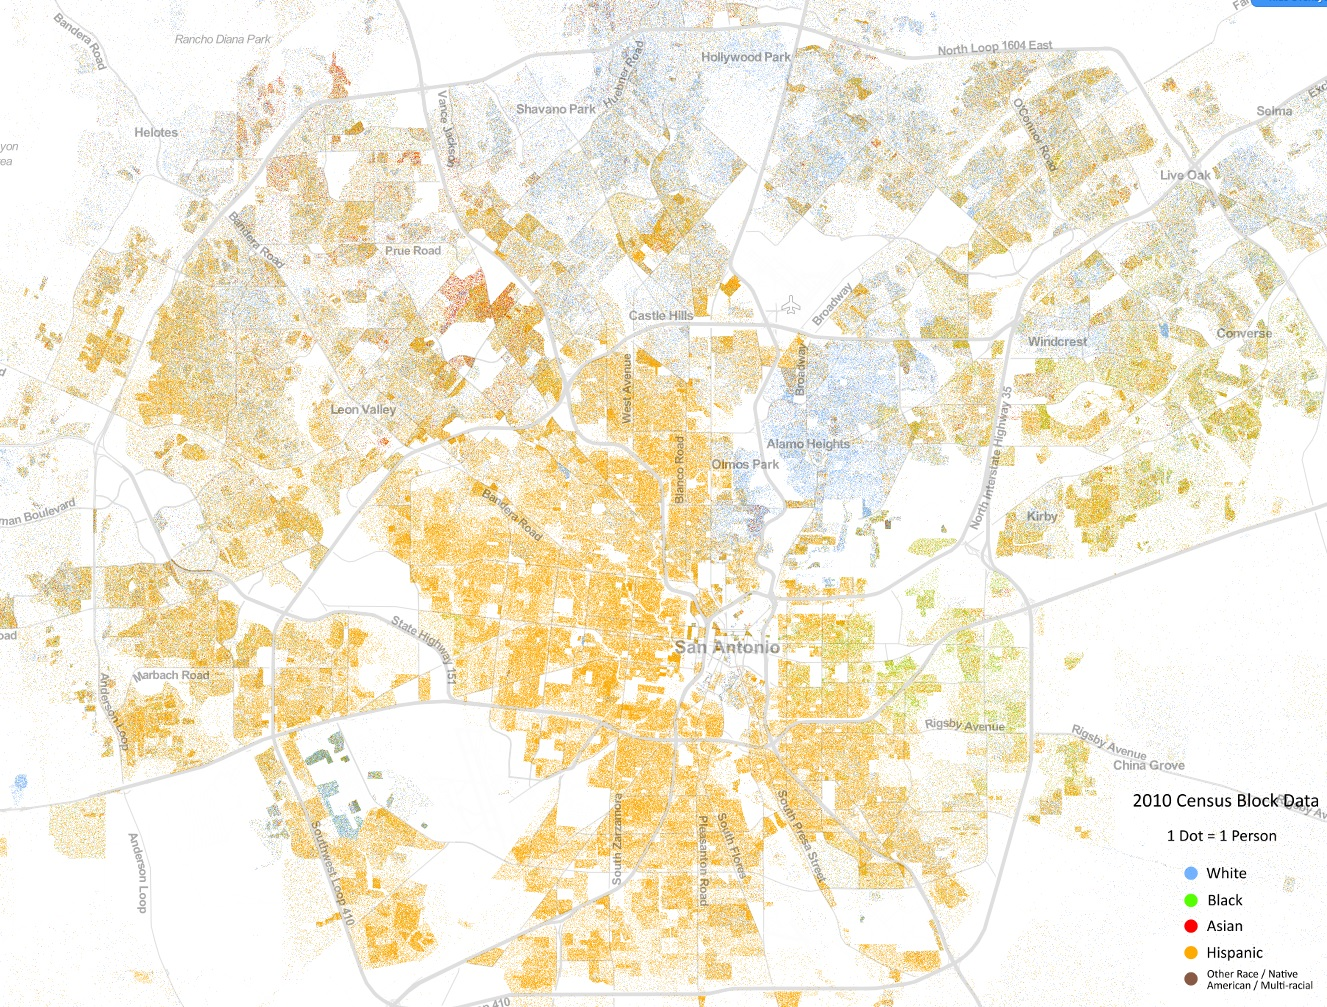 la cantera map with Stunning Diversity Map Shows San Antonio S Racial 5757061 on Meetings And Weddings together with 4455998265 together with Property Details moreover Caibarien moreover Athleticclubbilbao.